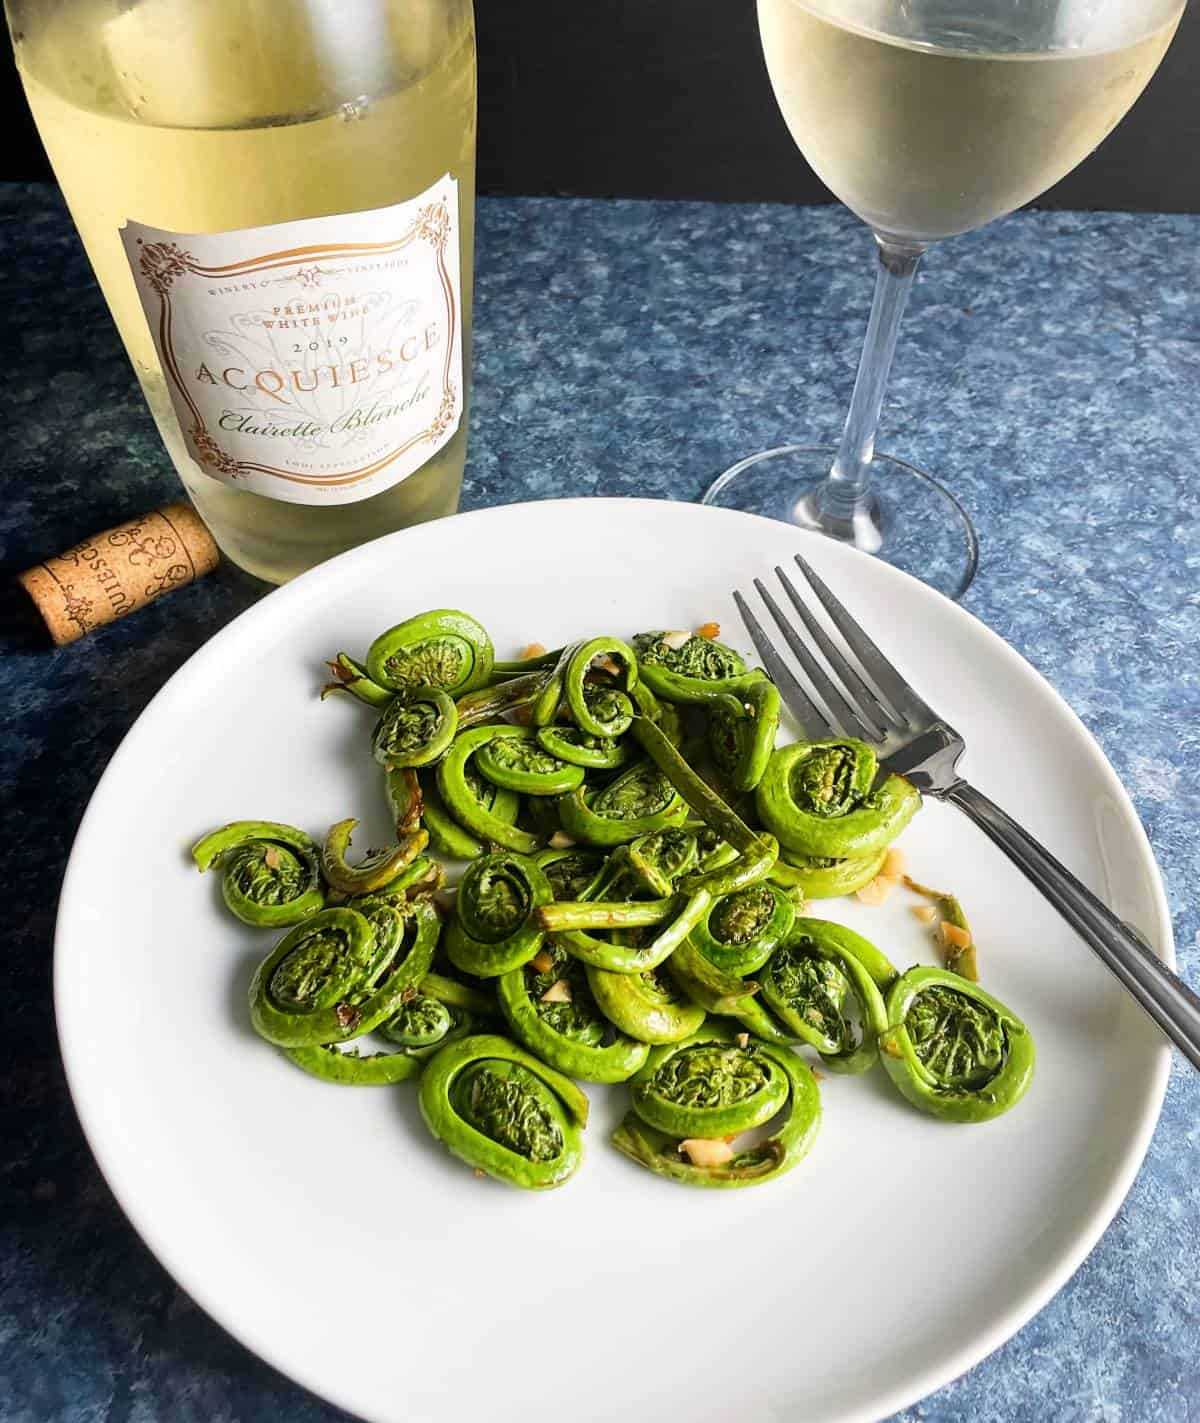 fiddlehead ferns served on a white plate along with a bottle and glass of whit wine.